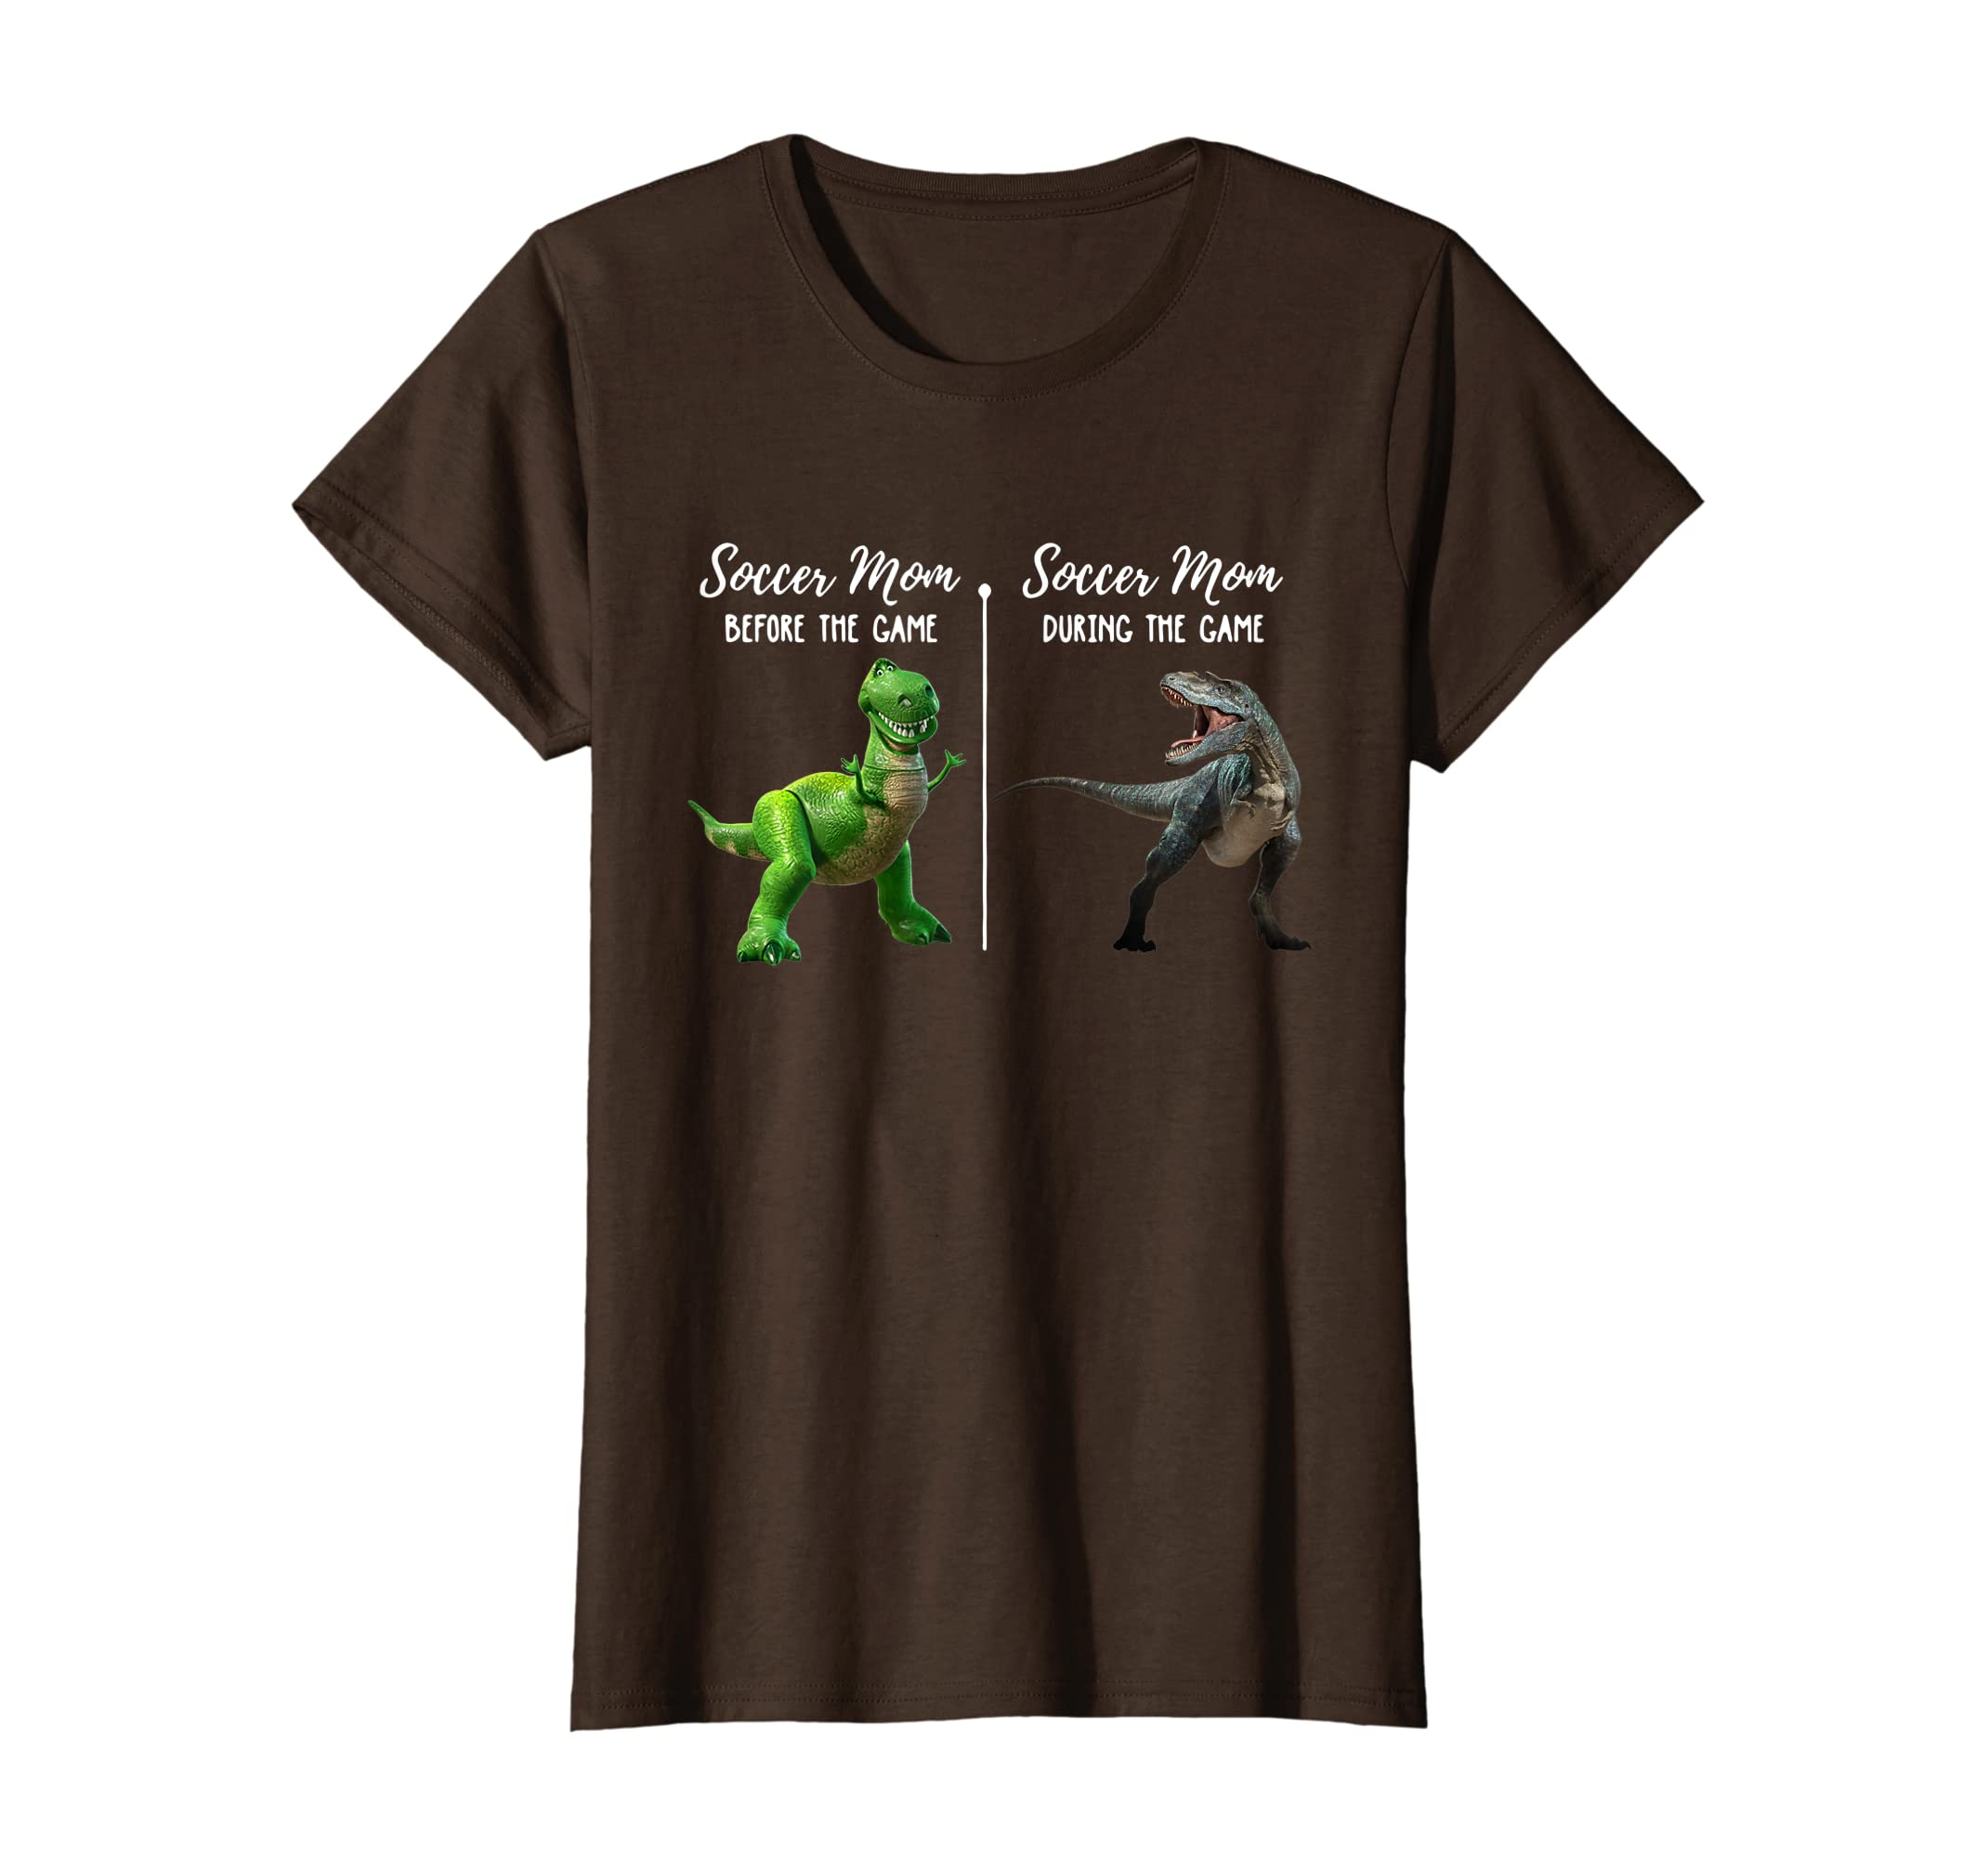 58fdf0c8 Amazon.com: Soccer Mom Before During The Game Funny Dinosaur T-shirt:  Clothing